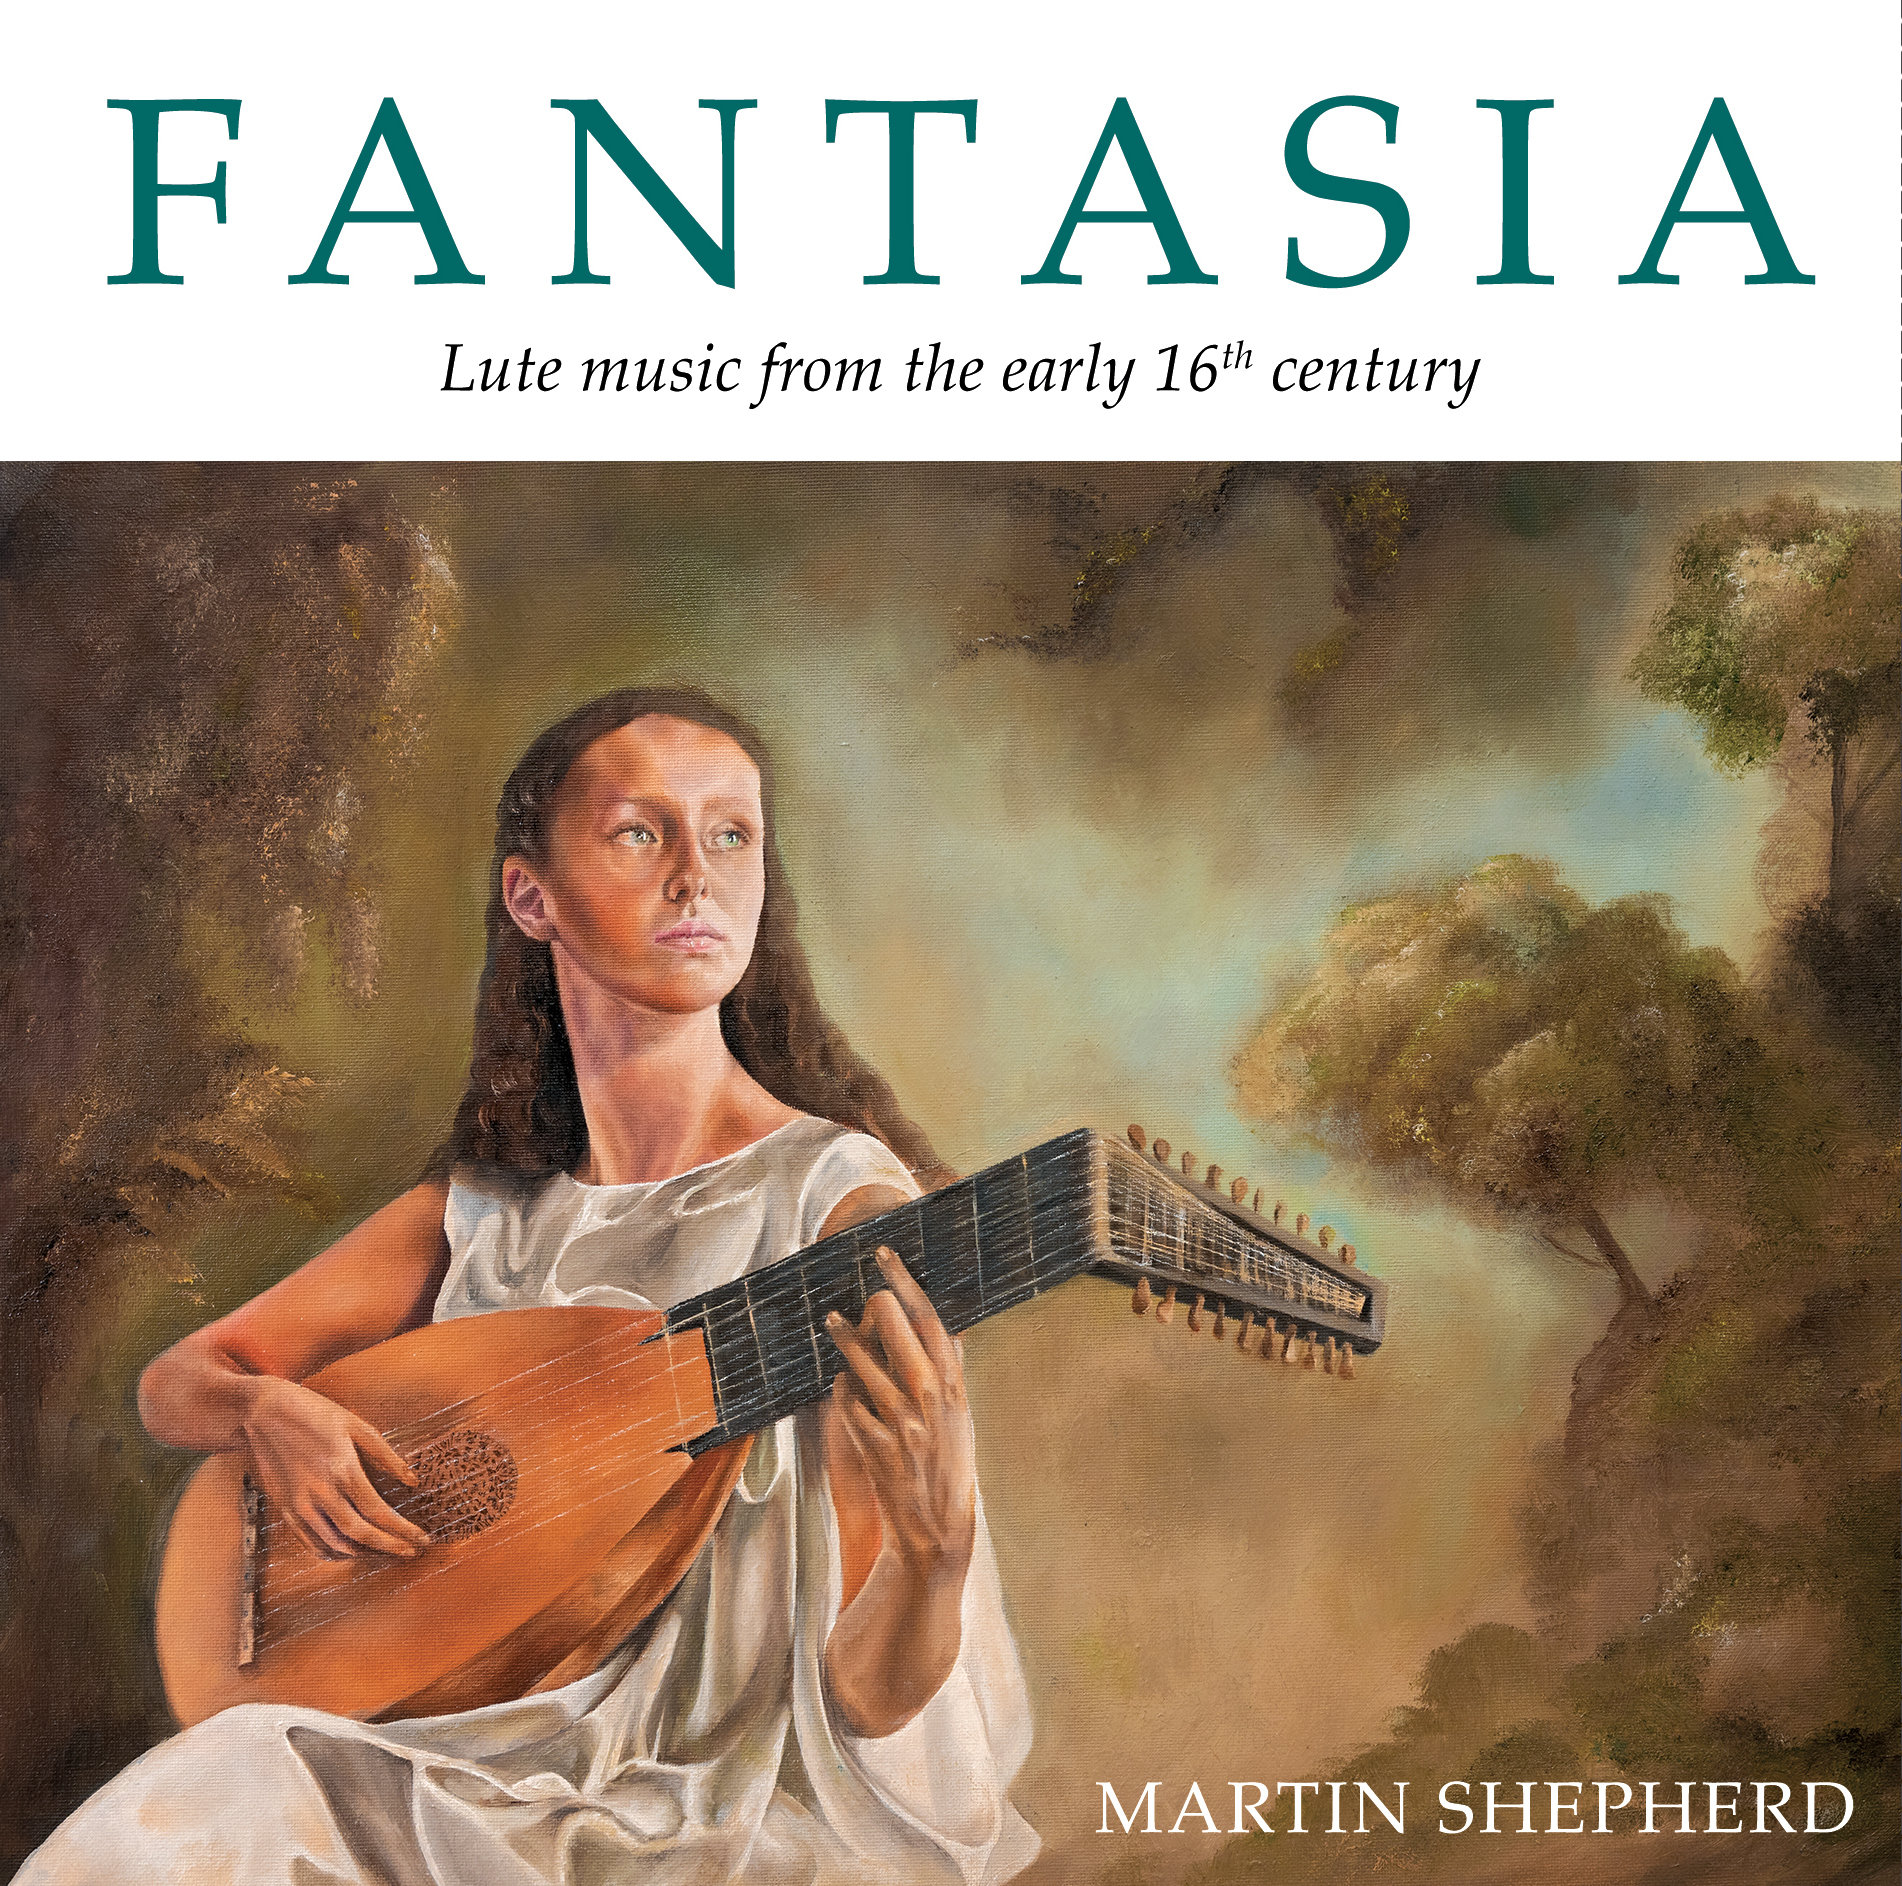 Fantasia: Lute music from the early 16th century FSR181